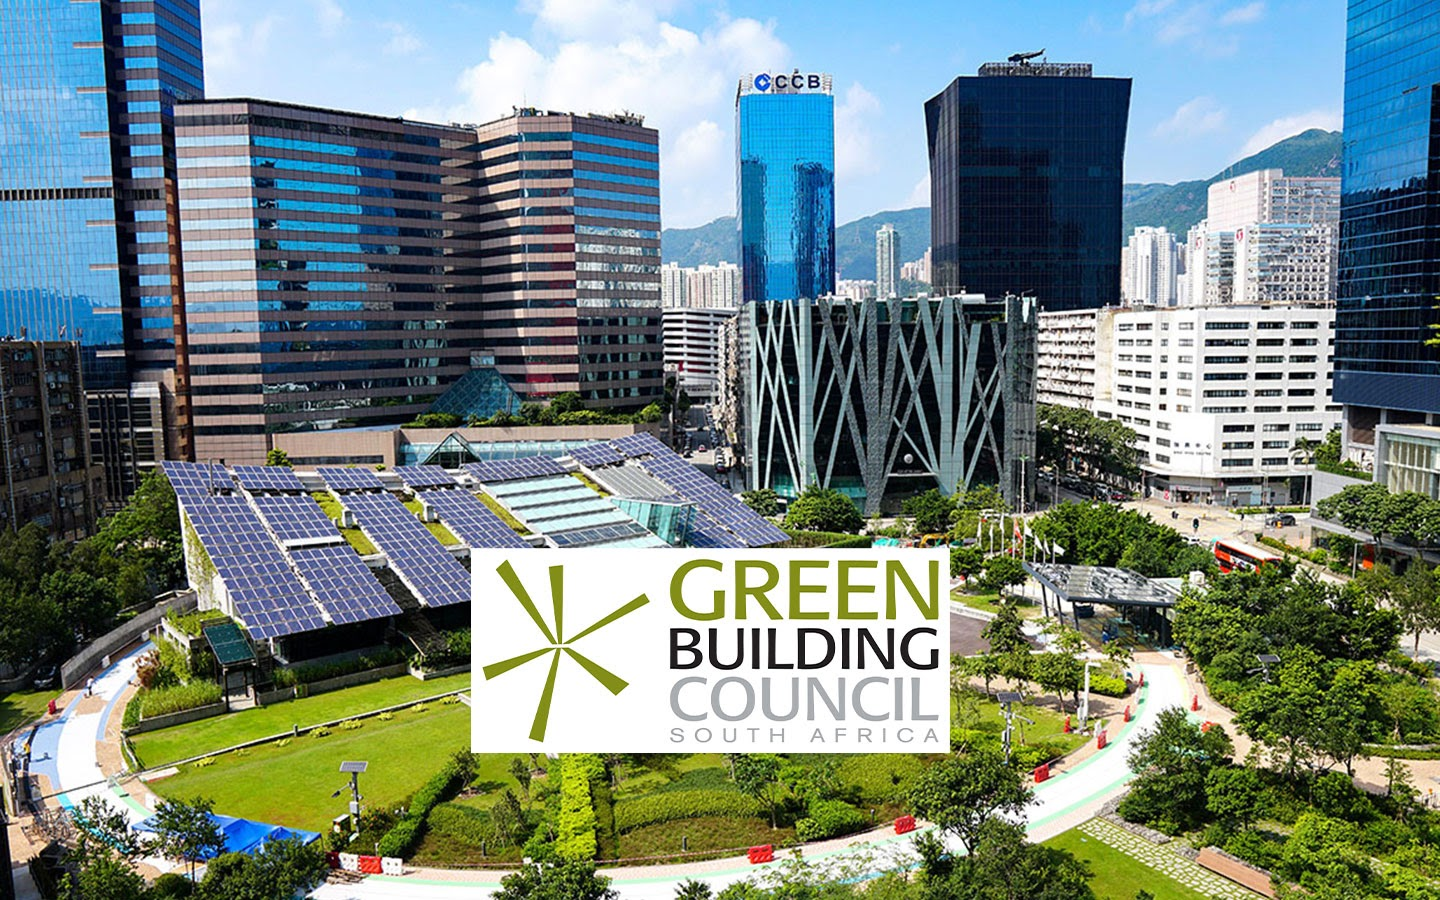 Green Building Council and our affiliation